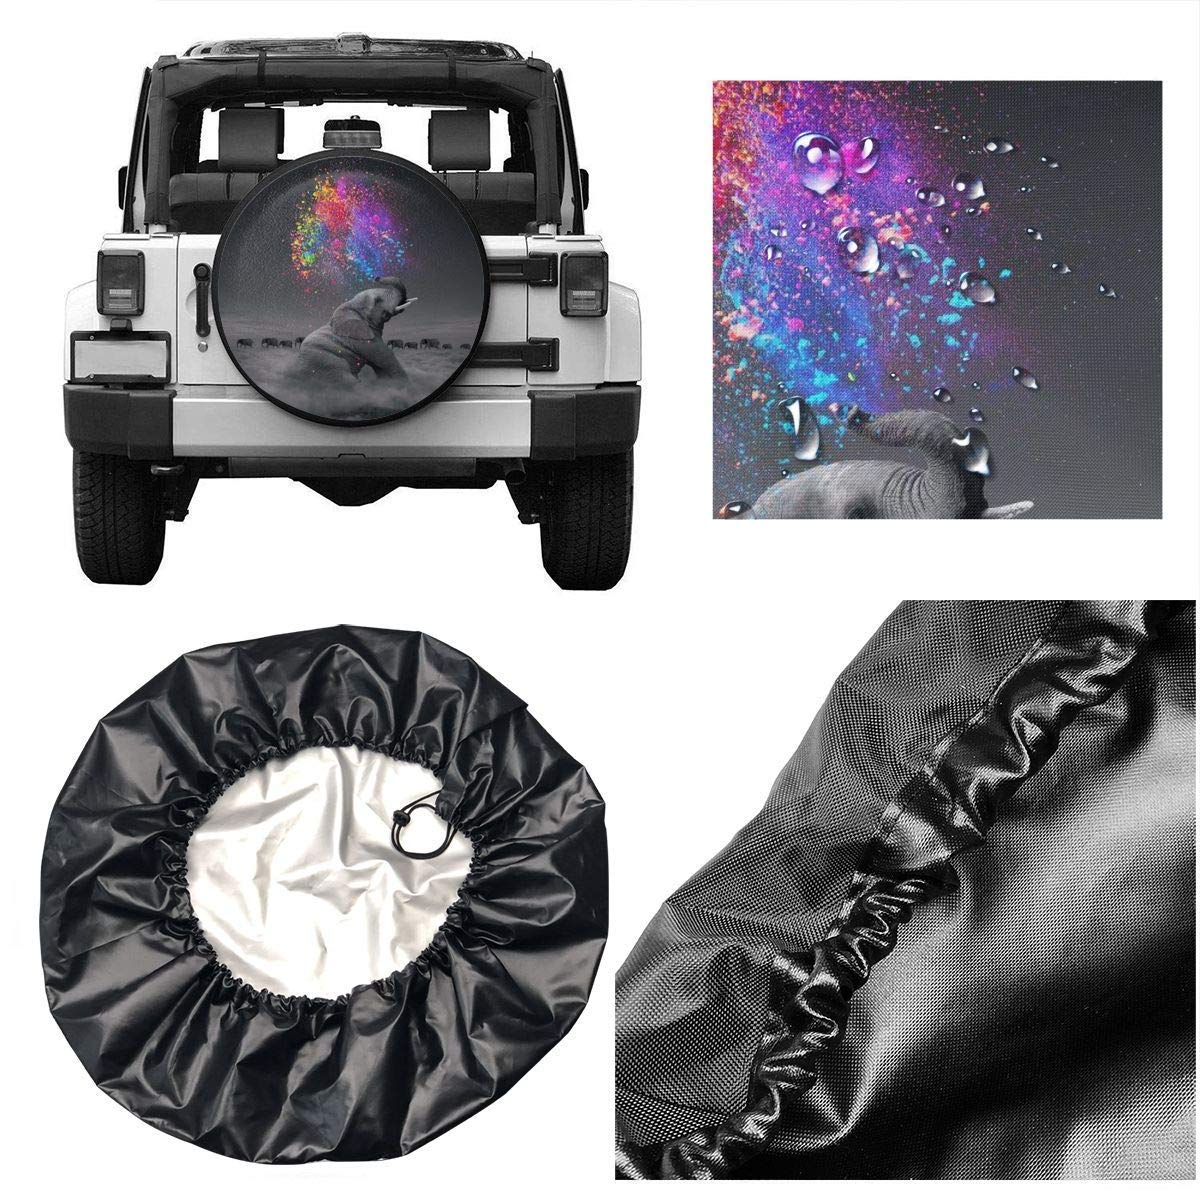 Fits Entire Wheel Xhayo Elephant Wheel Cover Wheelcover Spare Tyre Tire for SUV,RV,Trailer,Truck Wheel